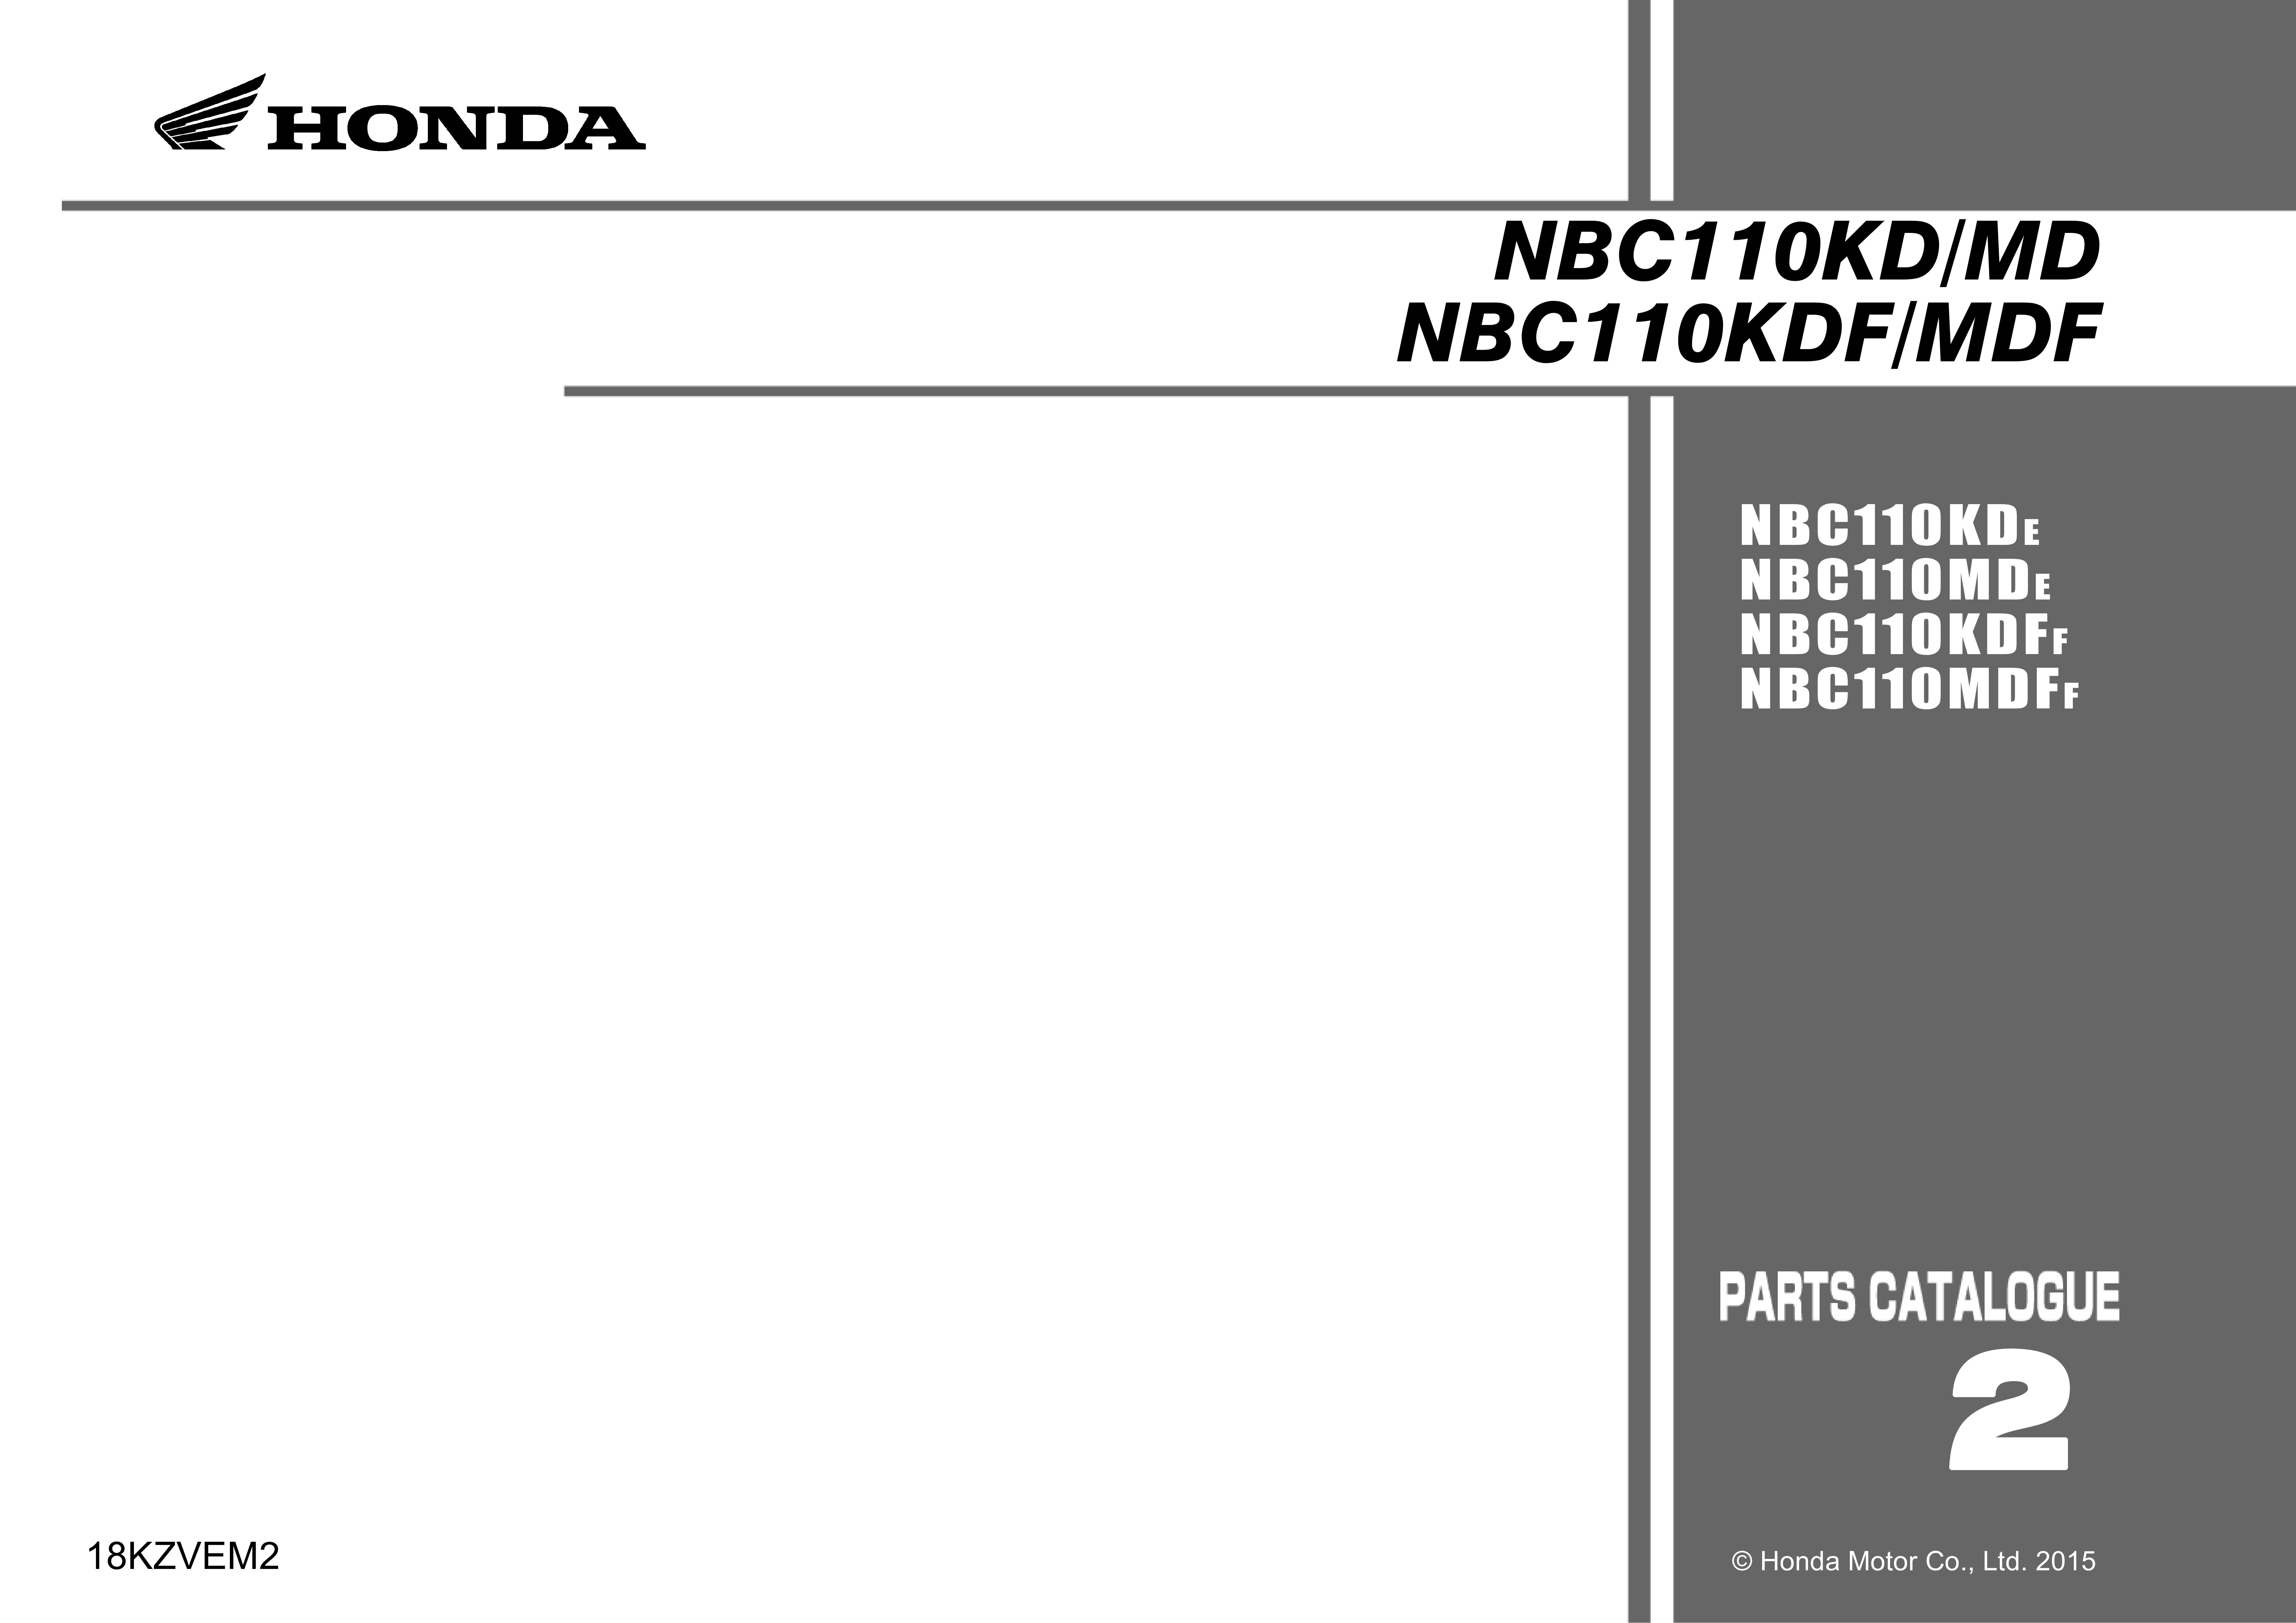 Parts List for Honda NBC110MDF Dream 110 (2015)